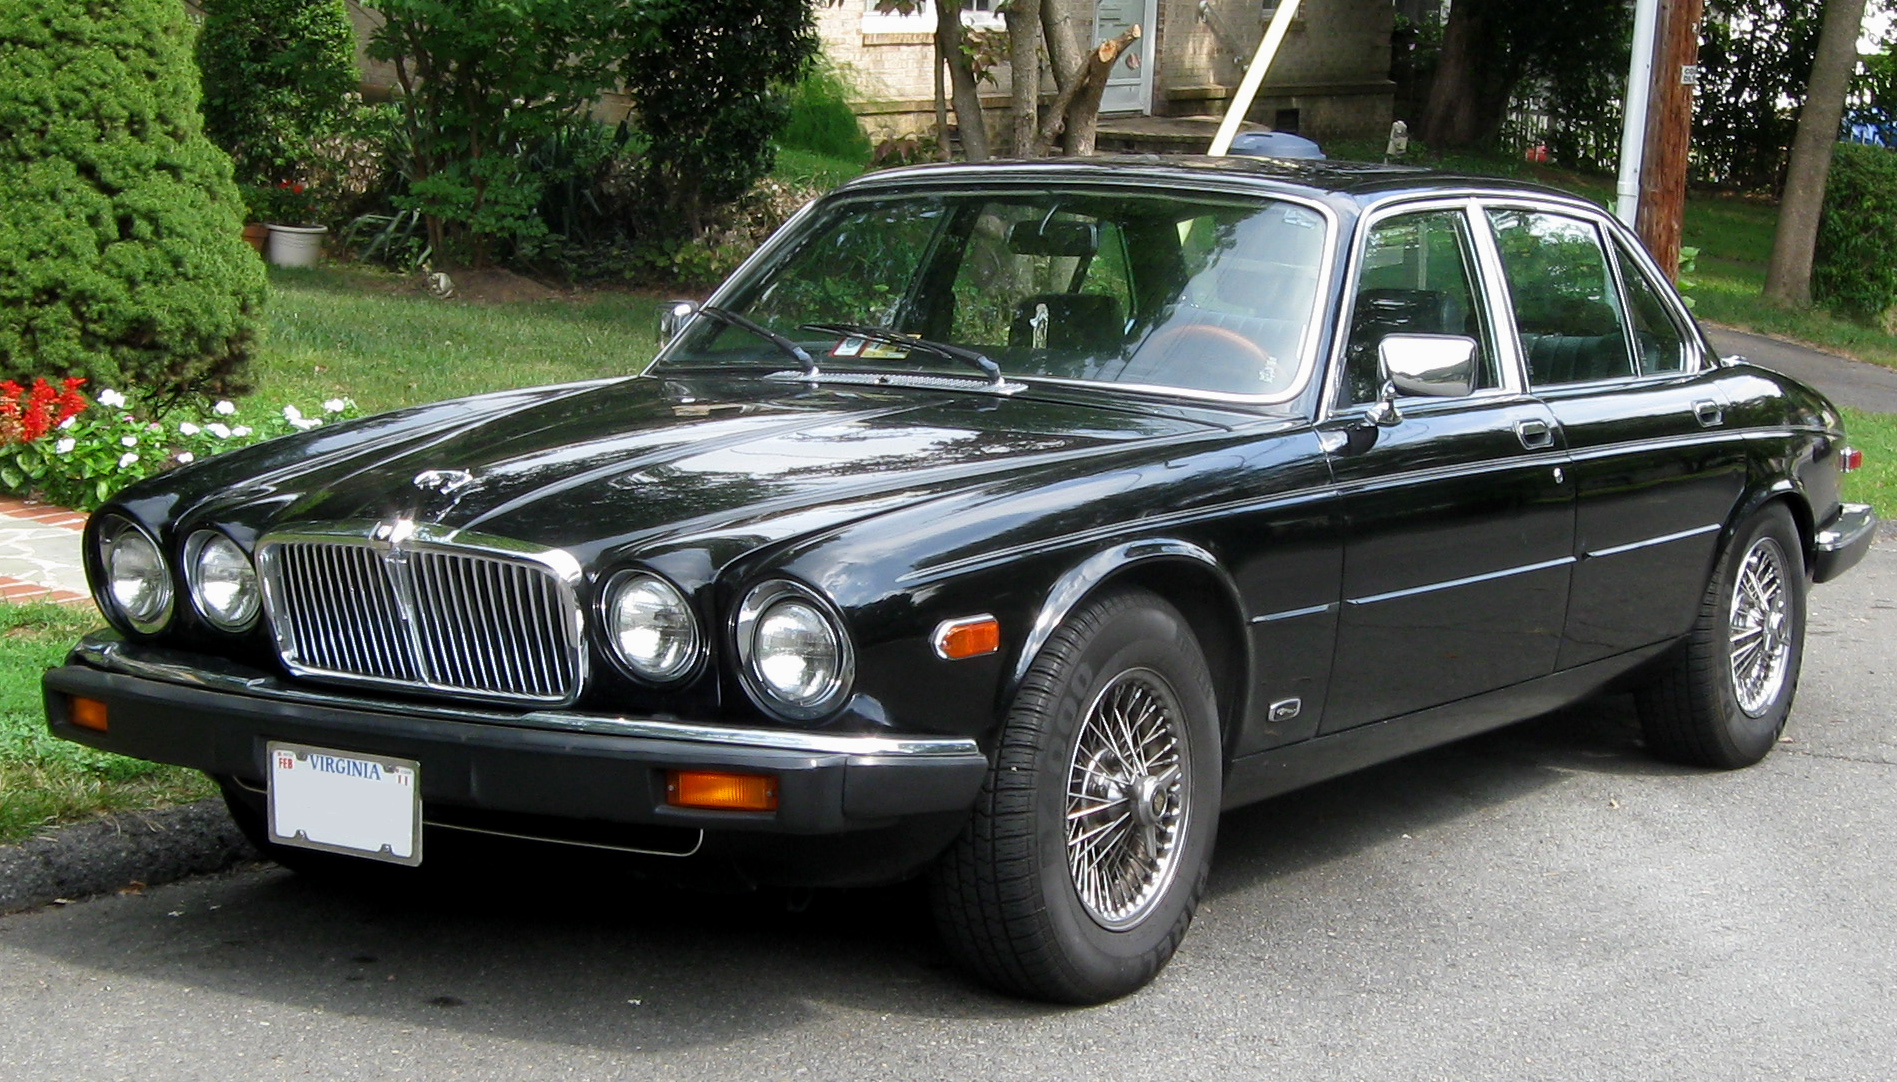 1991 Jaguar Xj-series #8